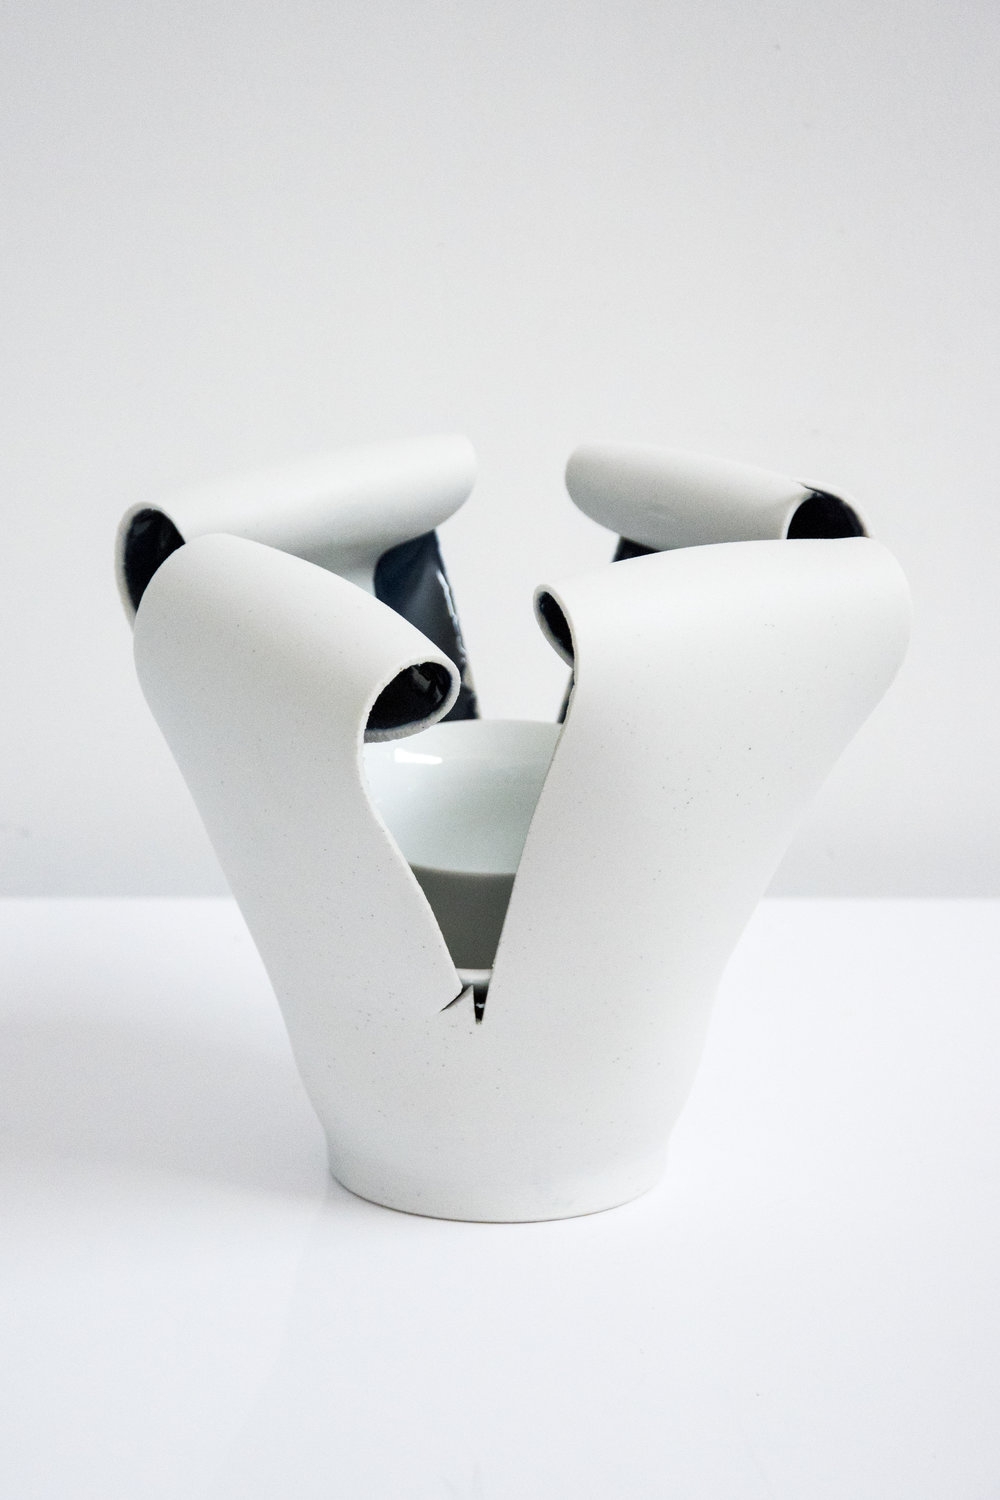 JDZ porcelain works - David Derksen27.jpg